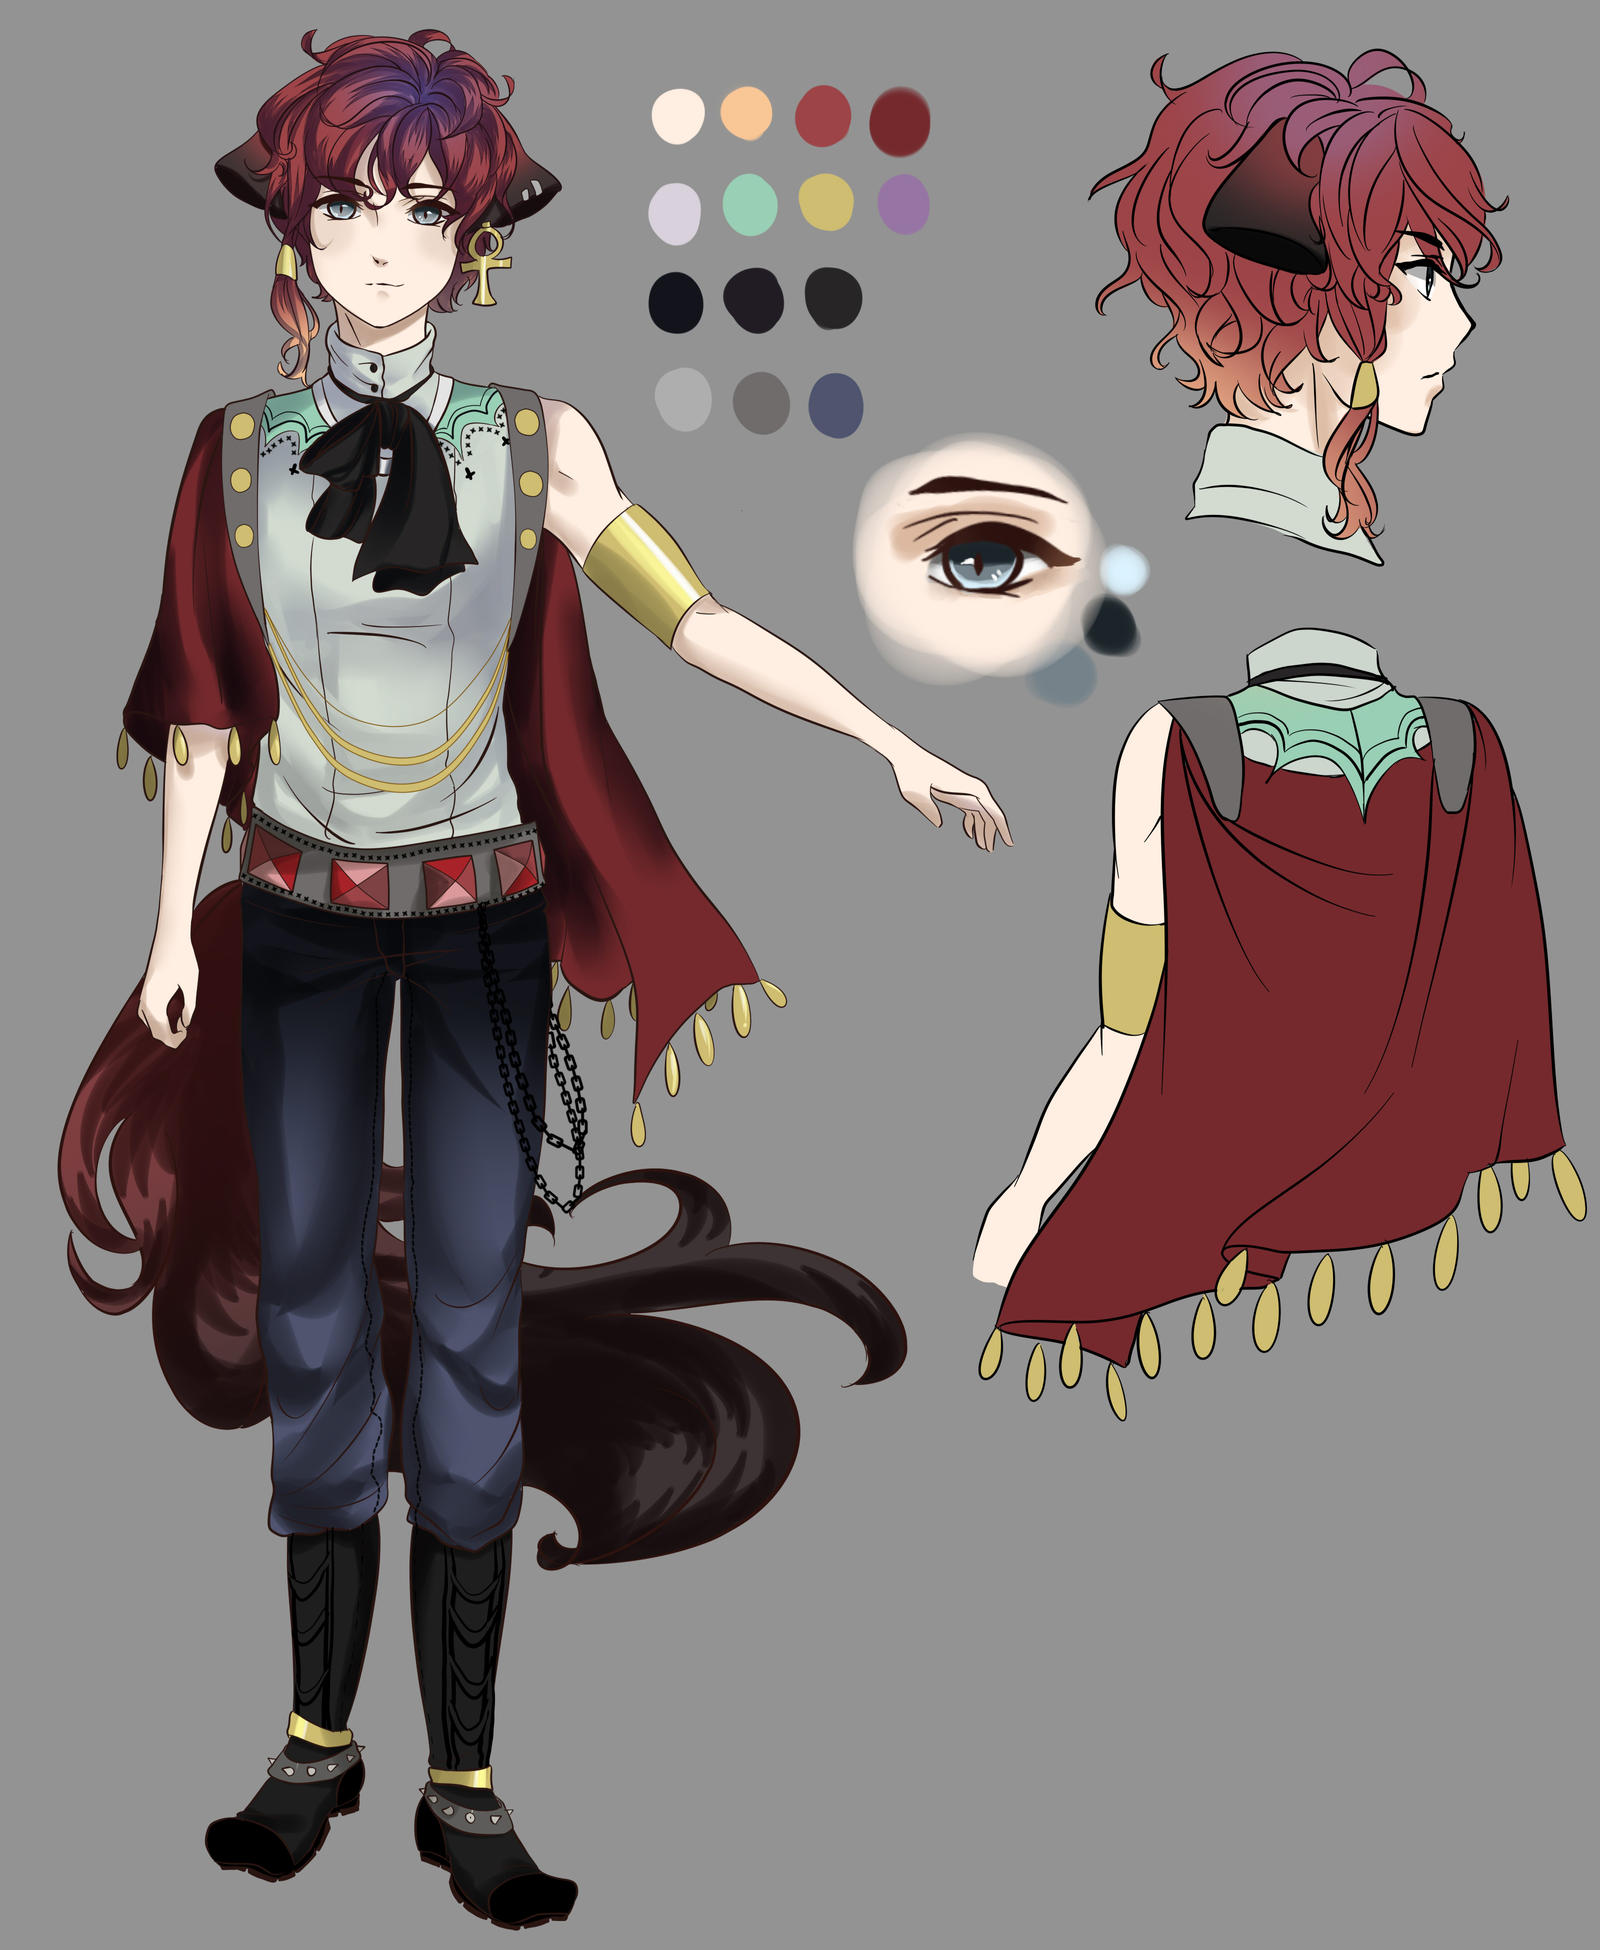 Character Design Contest : Character design contest by meiruyoshino on deviantart